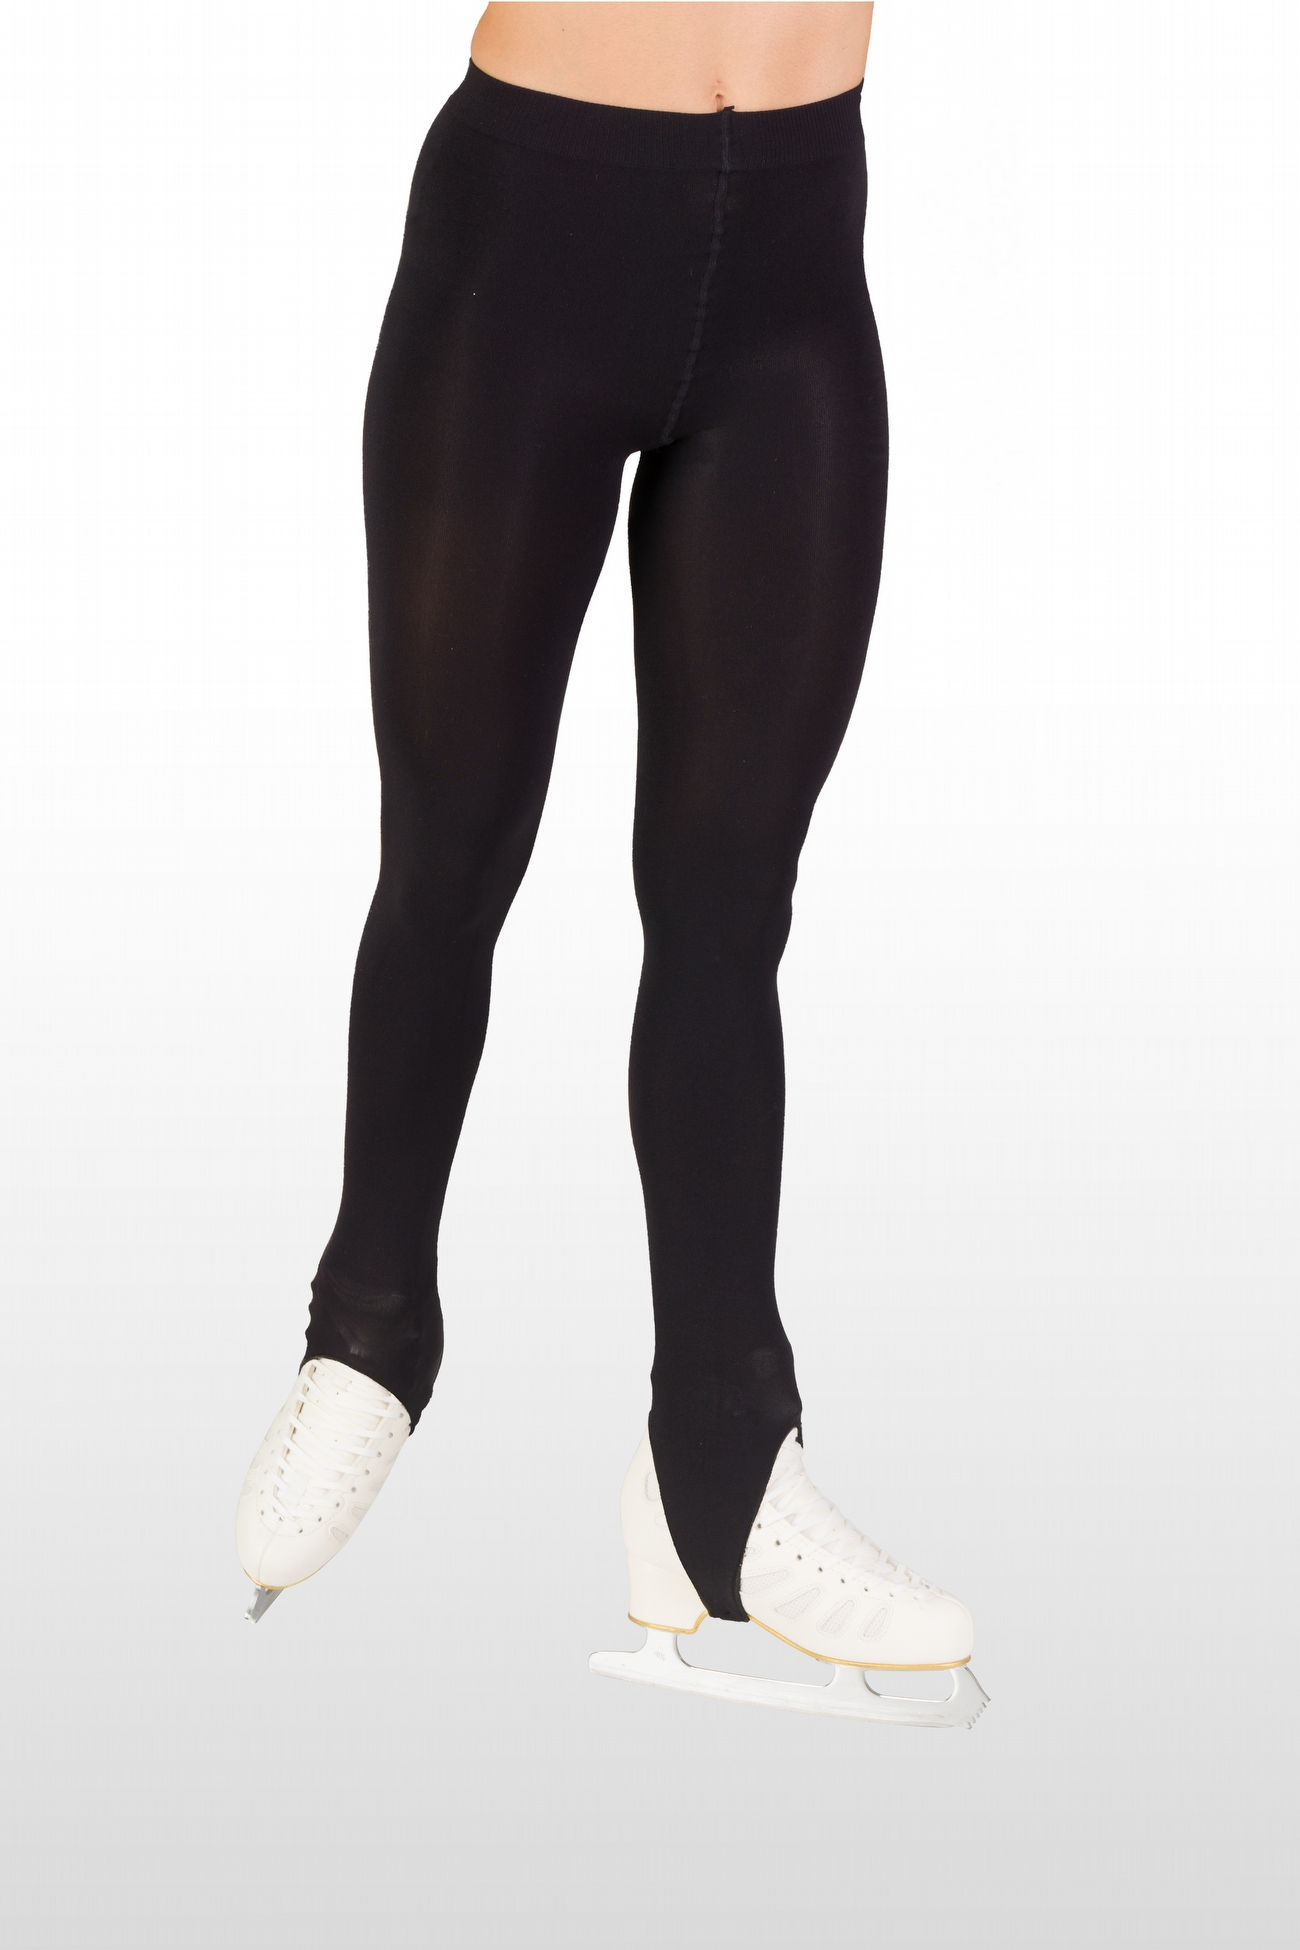 compra online Skating STIRRUP TIGHTS 100 DEN